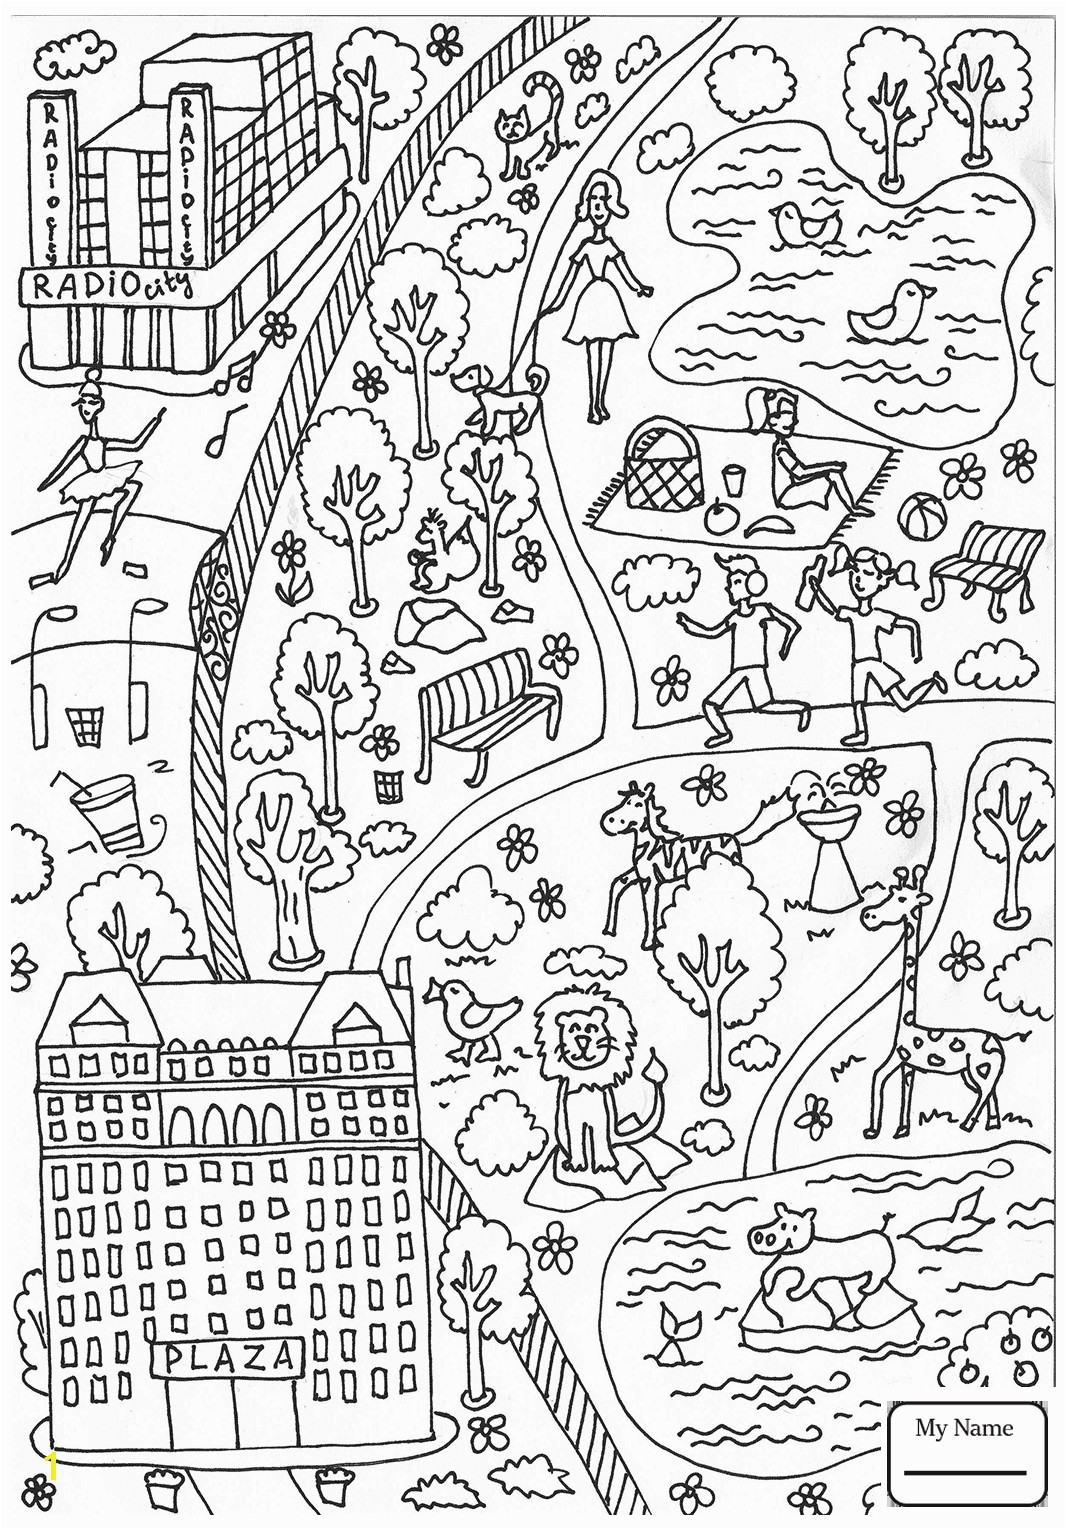 Outstanding Central Park Coloring Pages Architecture And Metropolitan Museum